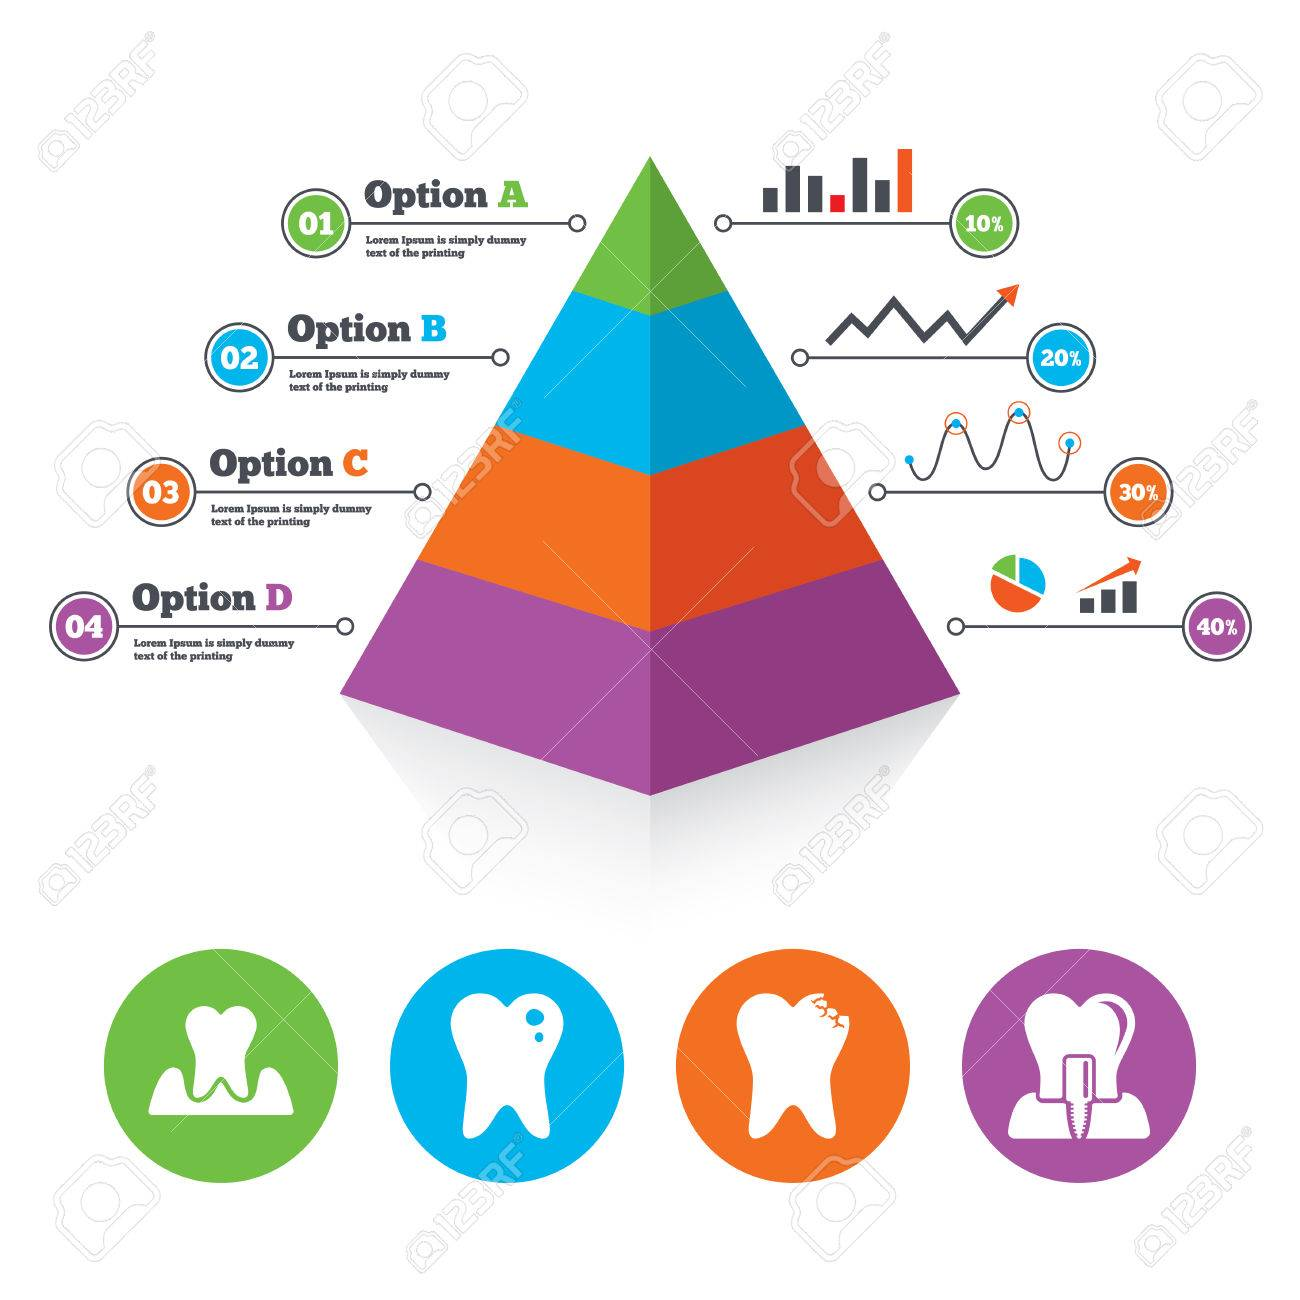 Pyramid chart template dental care icons caries tooth sign pyramid chart template dental care icons caries tooth sign tooth endosseous implant symbol biocorpaavc Gallery